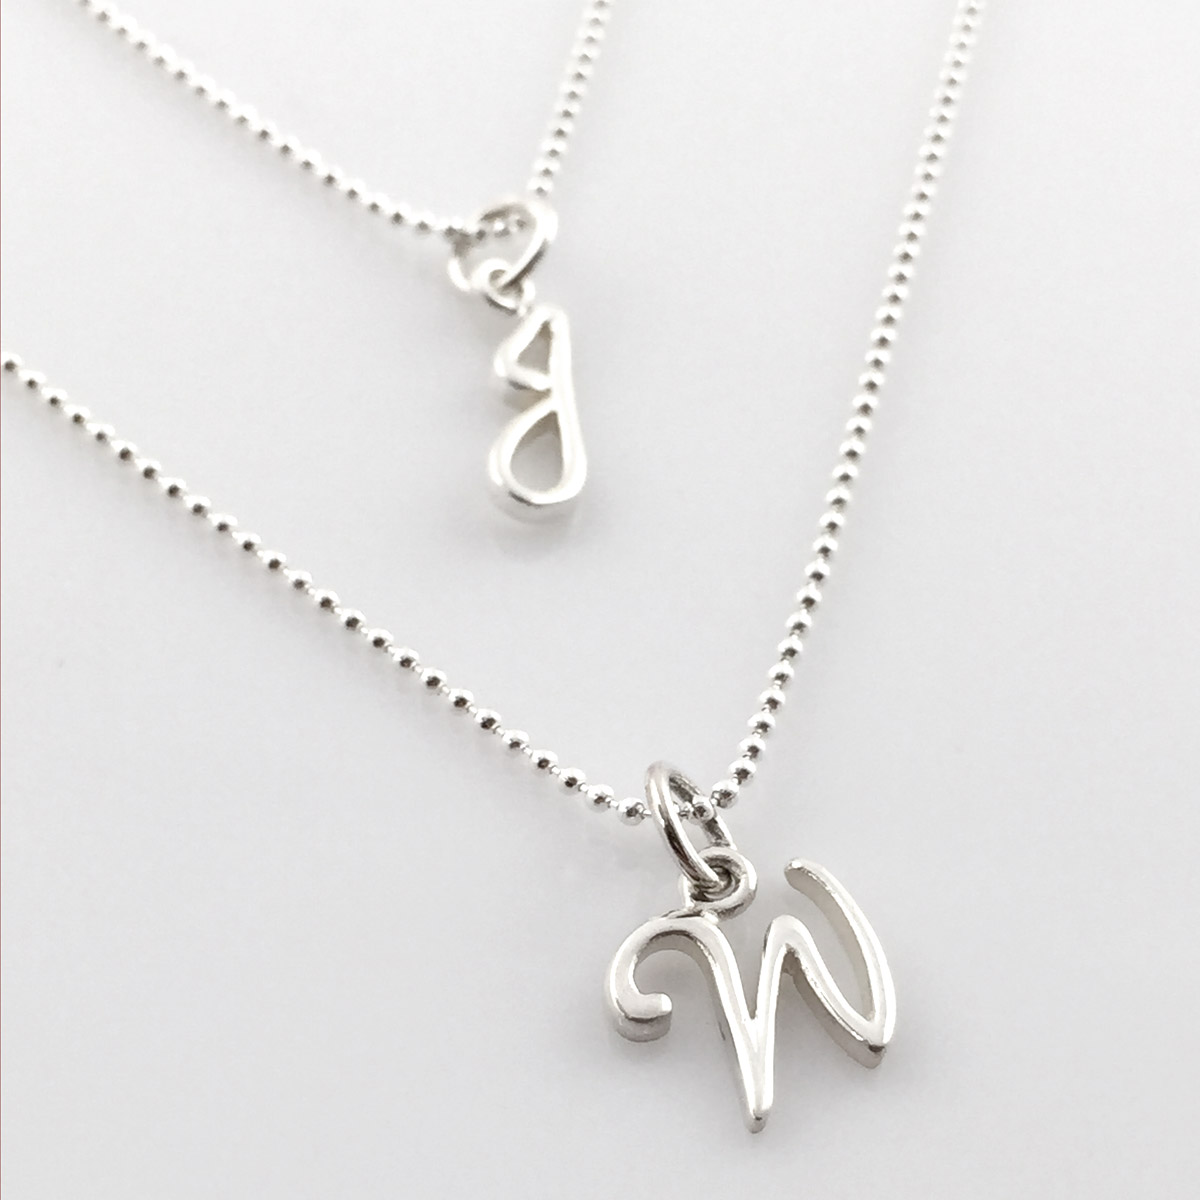 Simple Script Initial Charm Necklace - Great for layering!